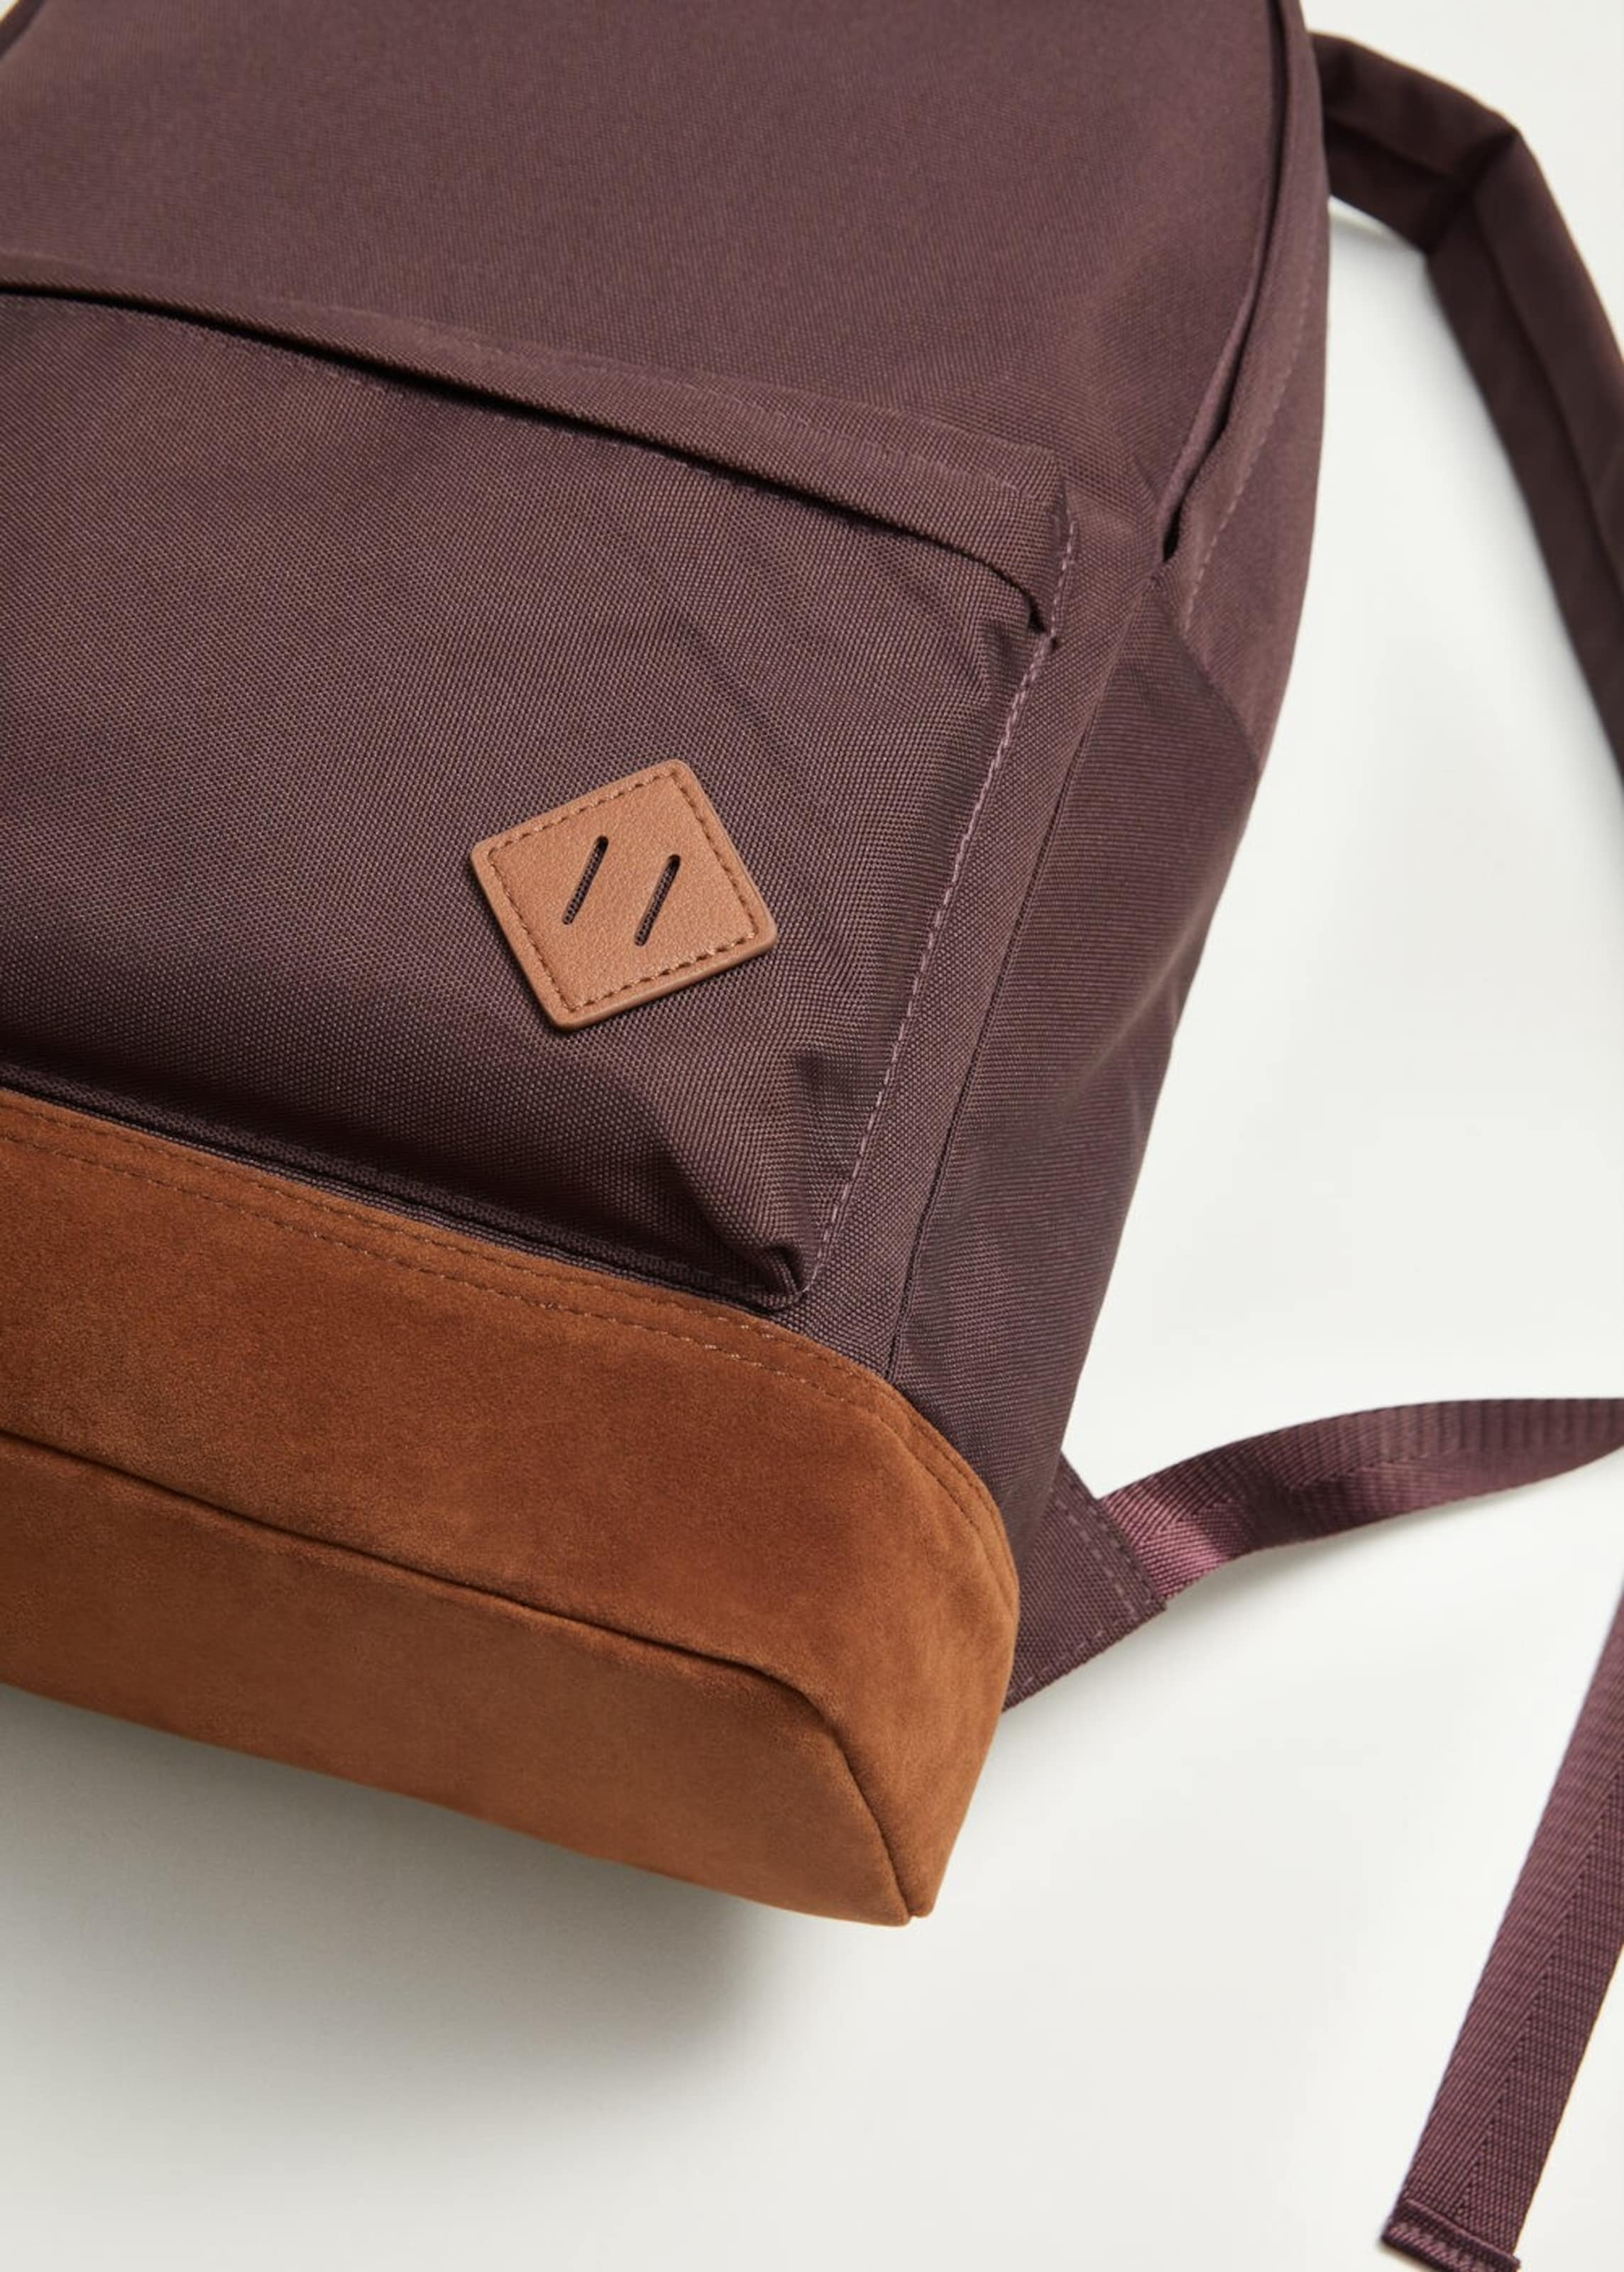 Basic' Man Bordeaux Rucksack 'm In Mango e AL34Rjq5